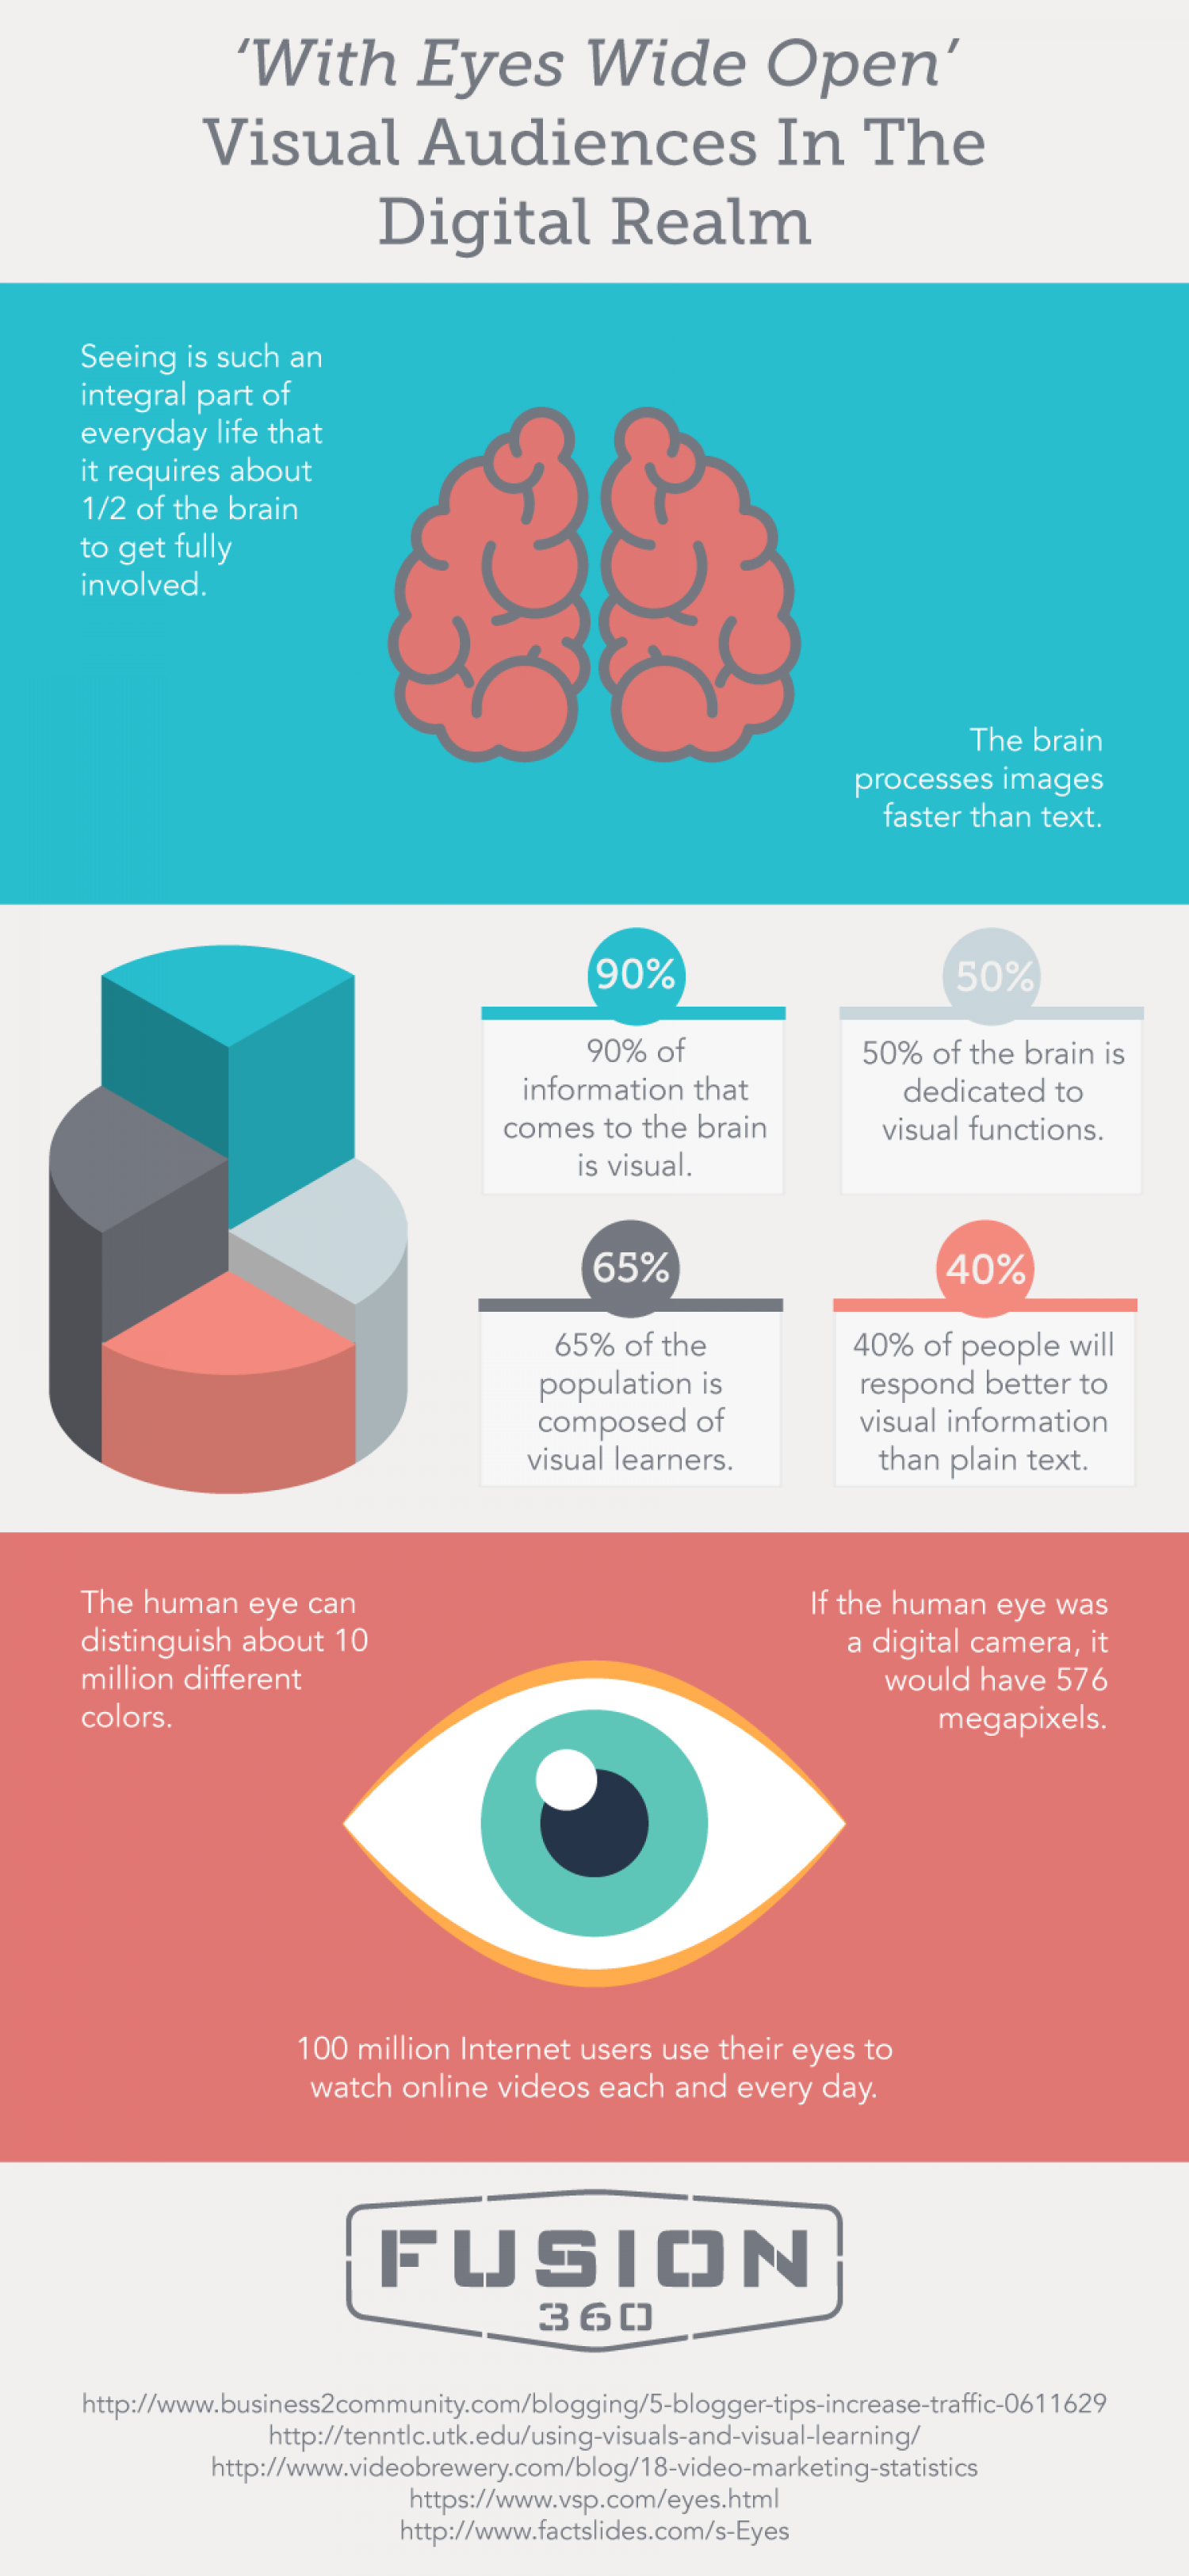 with eyes wide open visual audiences in the digital realm infographic